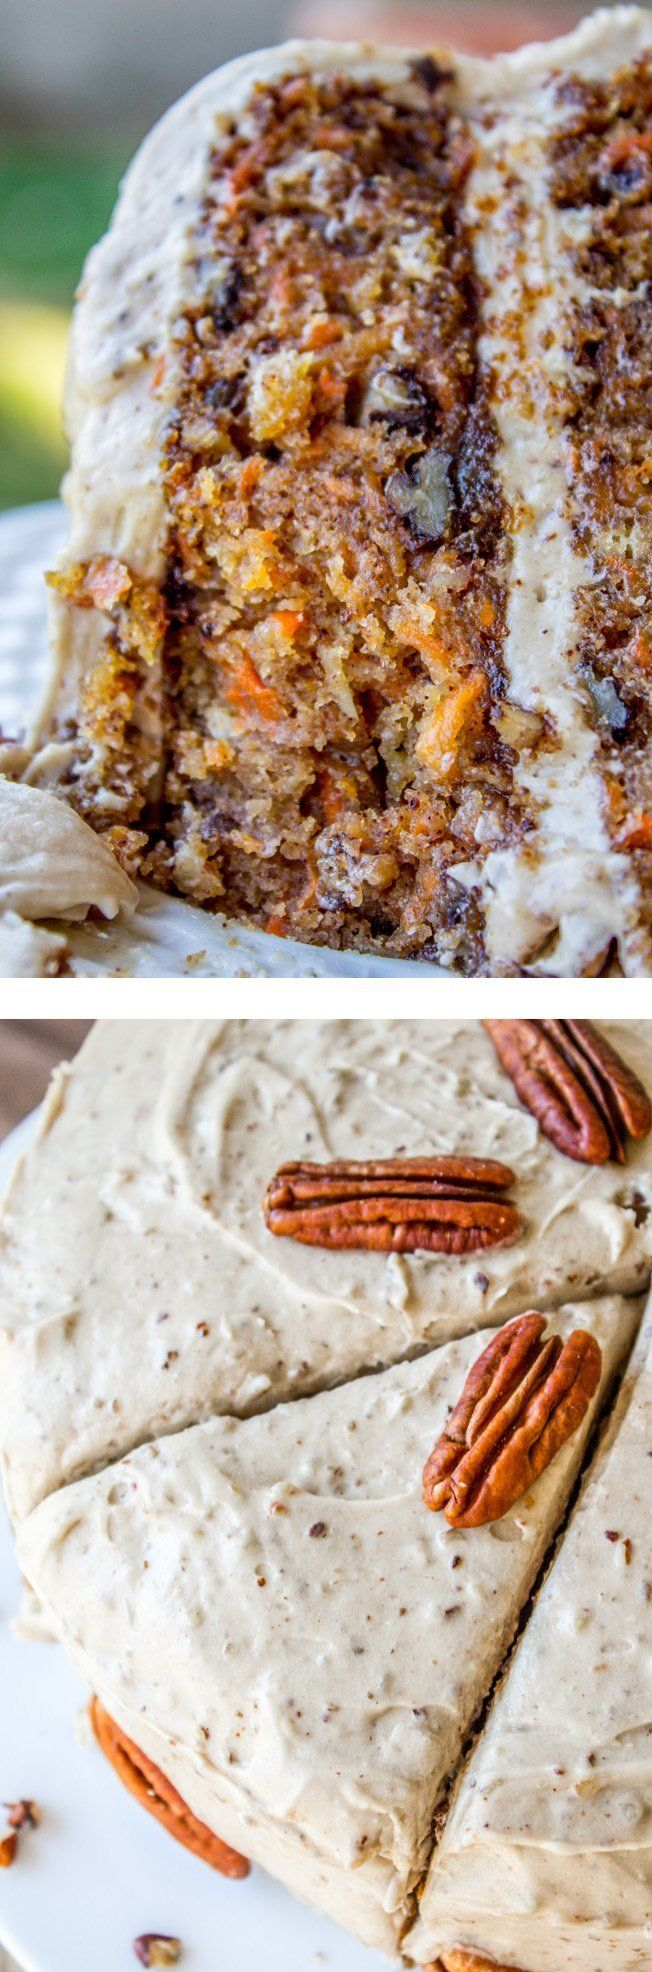 17 Best ideas about Carrot Cake Decoration on Pinterest ...